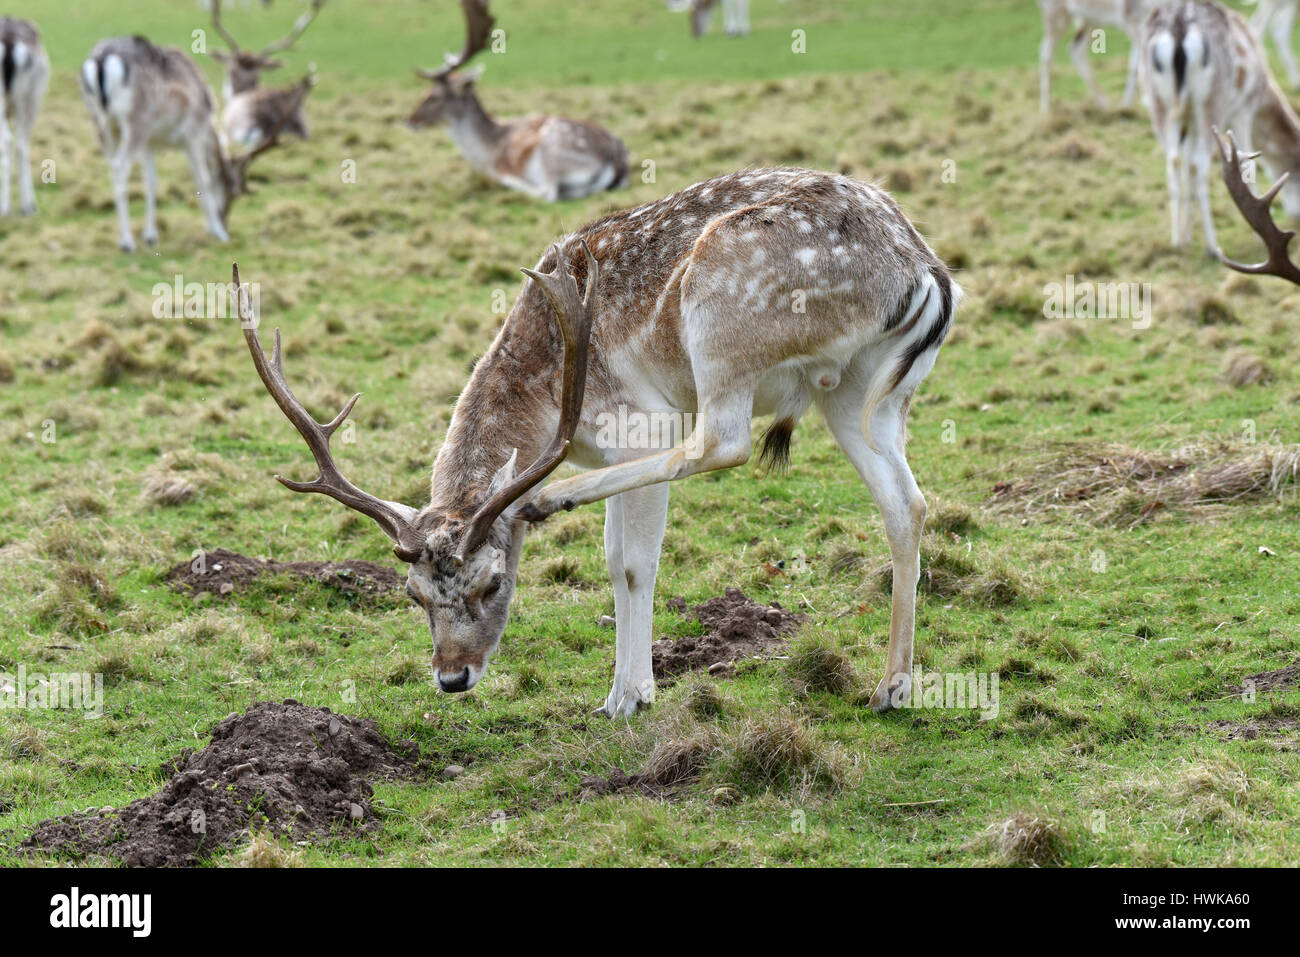 Fallow deer grazing Uk - Stock Image